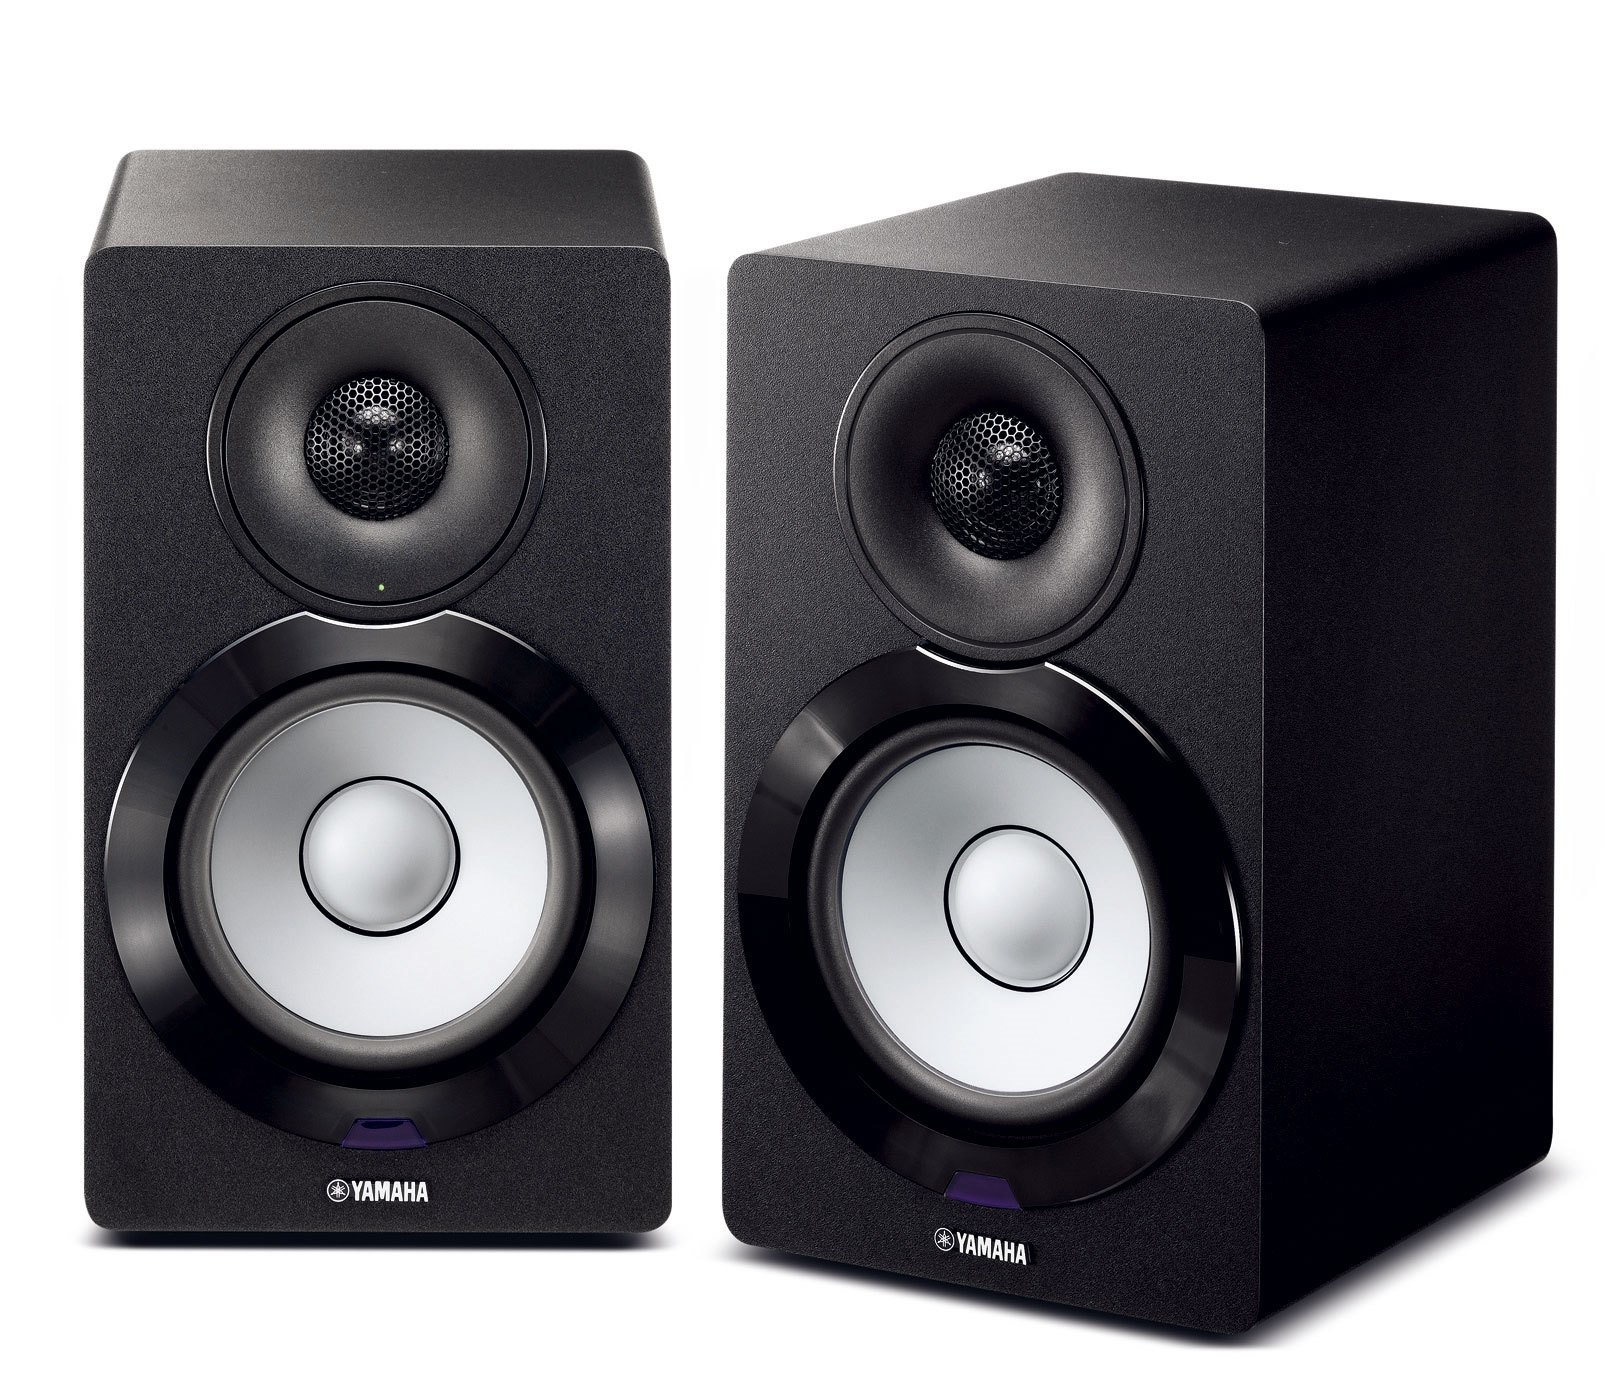 MusicCast NX-N10 - Overview - Speaker Systems - Audio & Visual